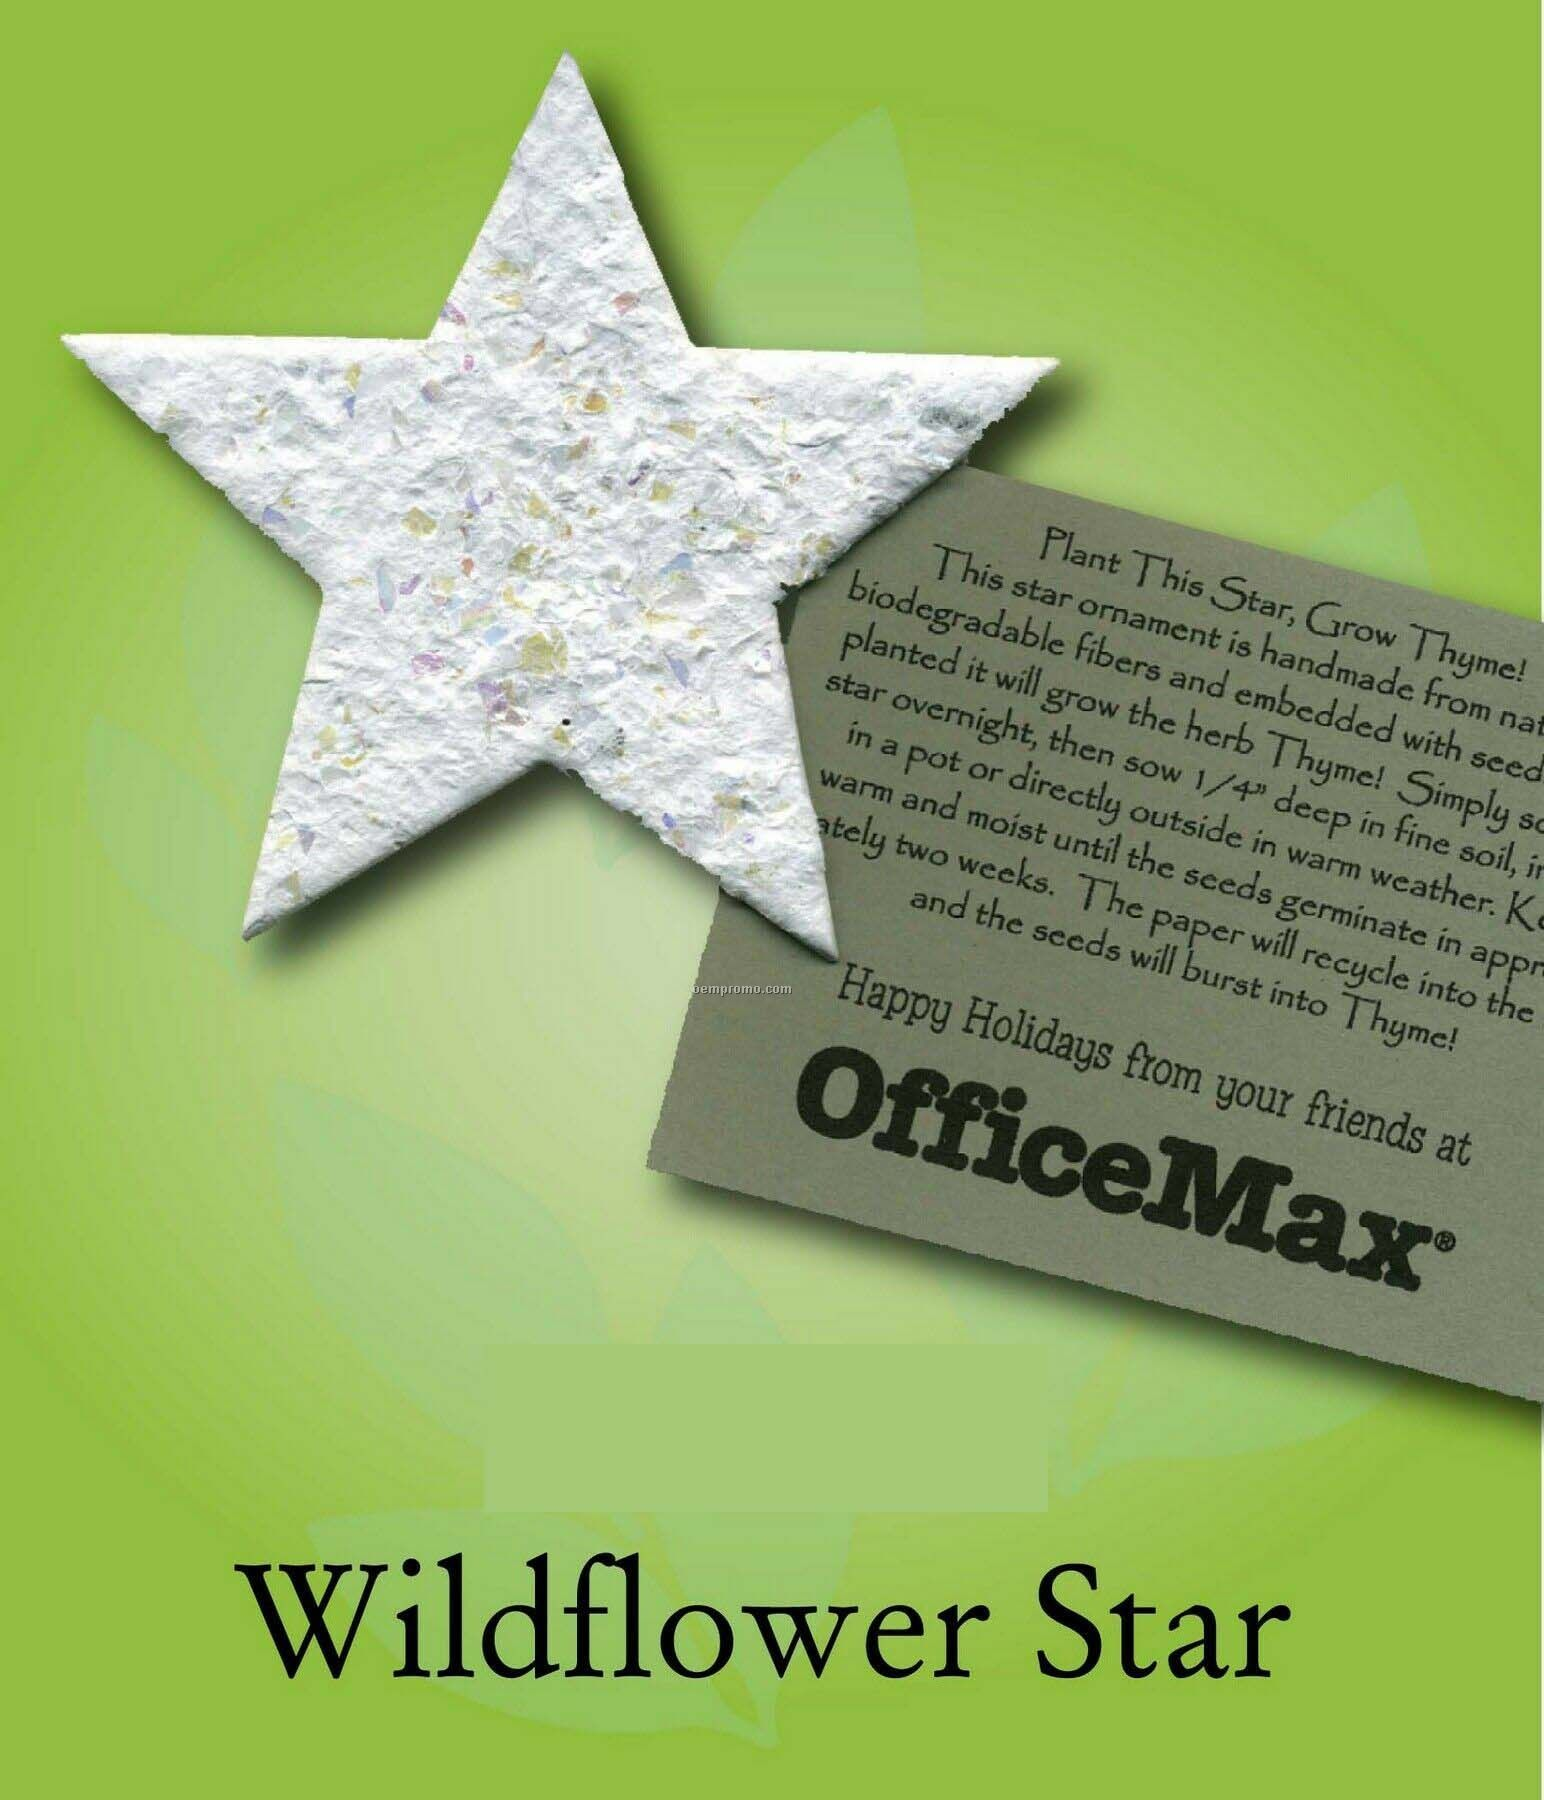 Wildflower Star Ornament With Embedded Seed